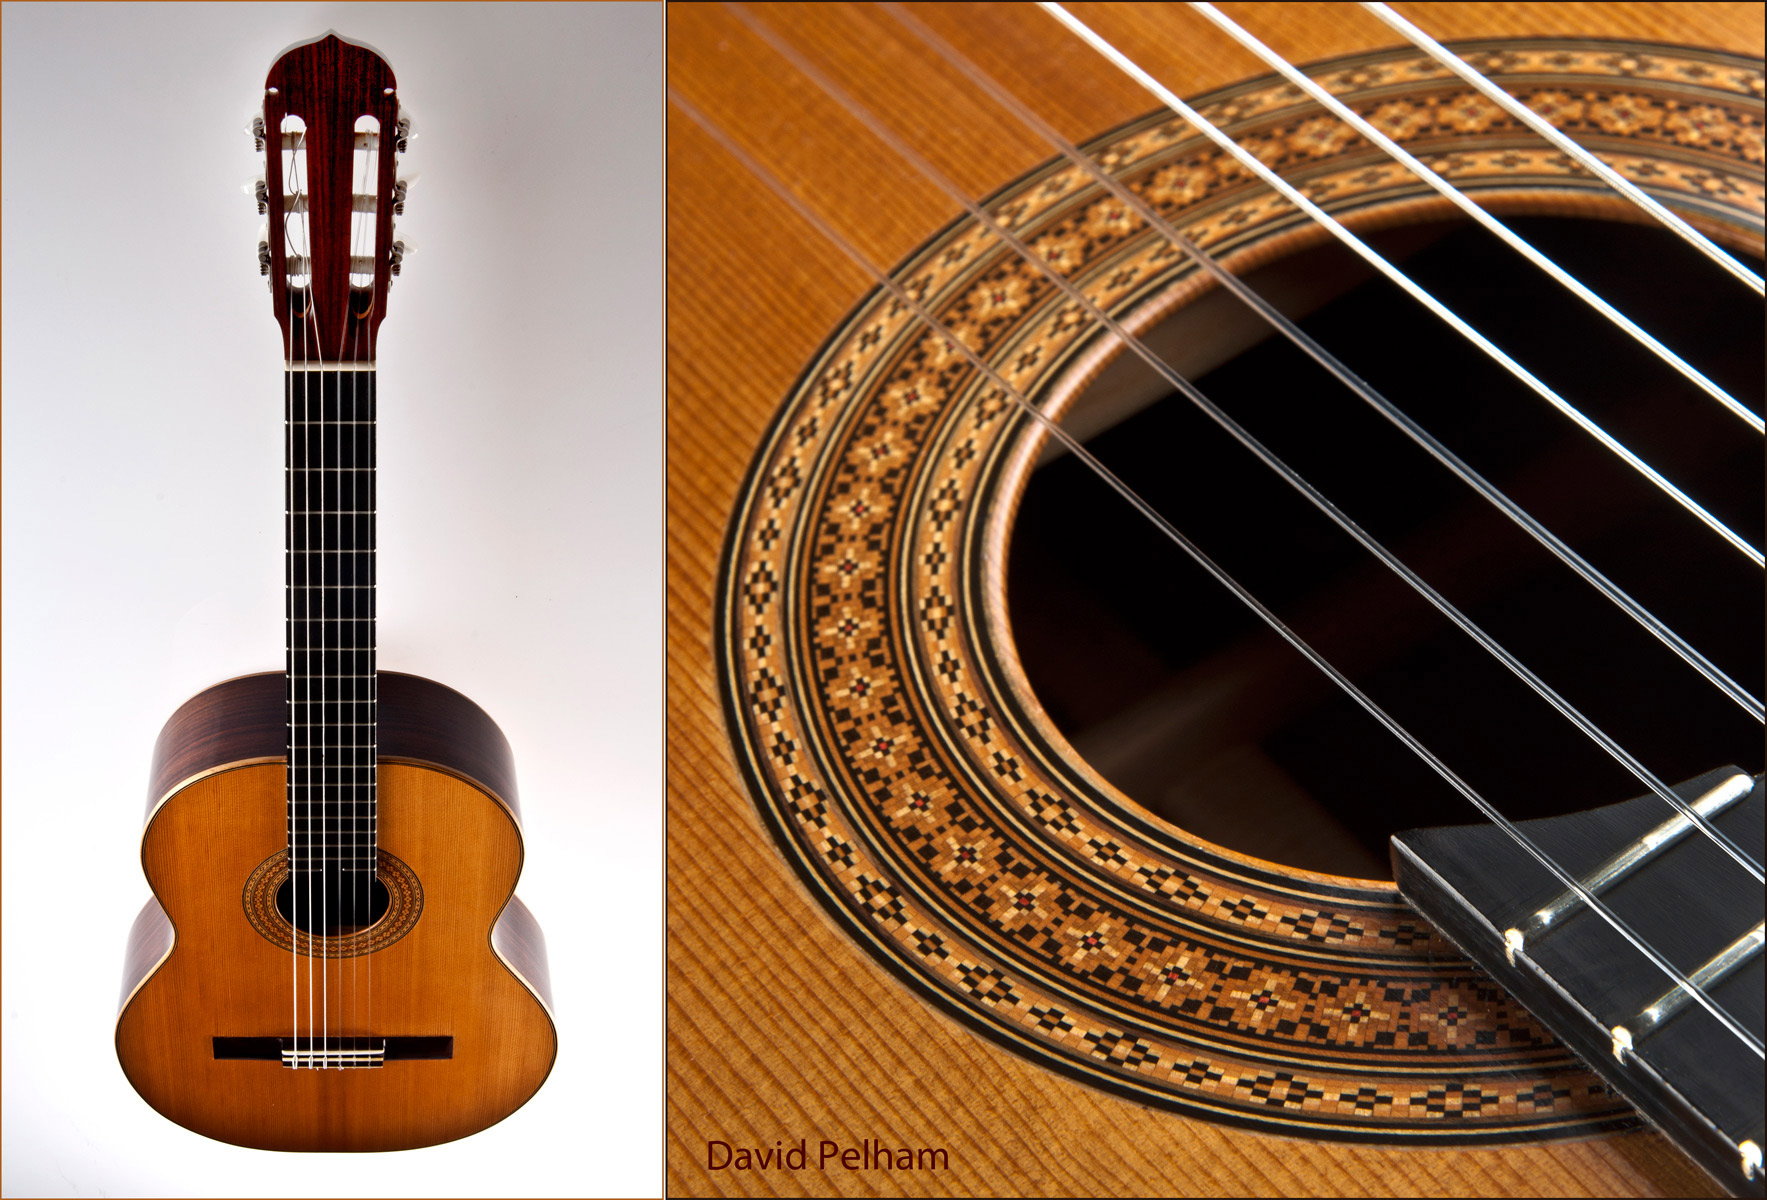 David Pelham Guitar-MusicMan Photography